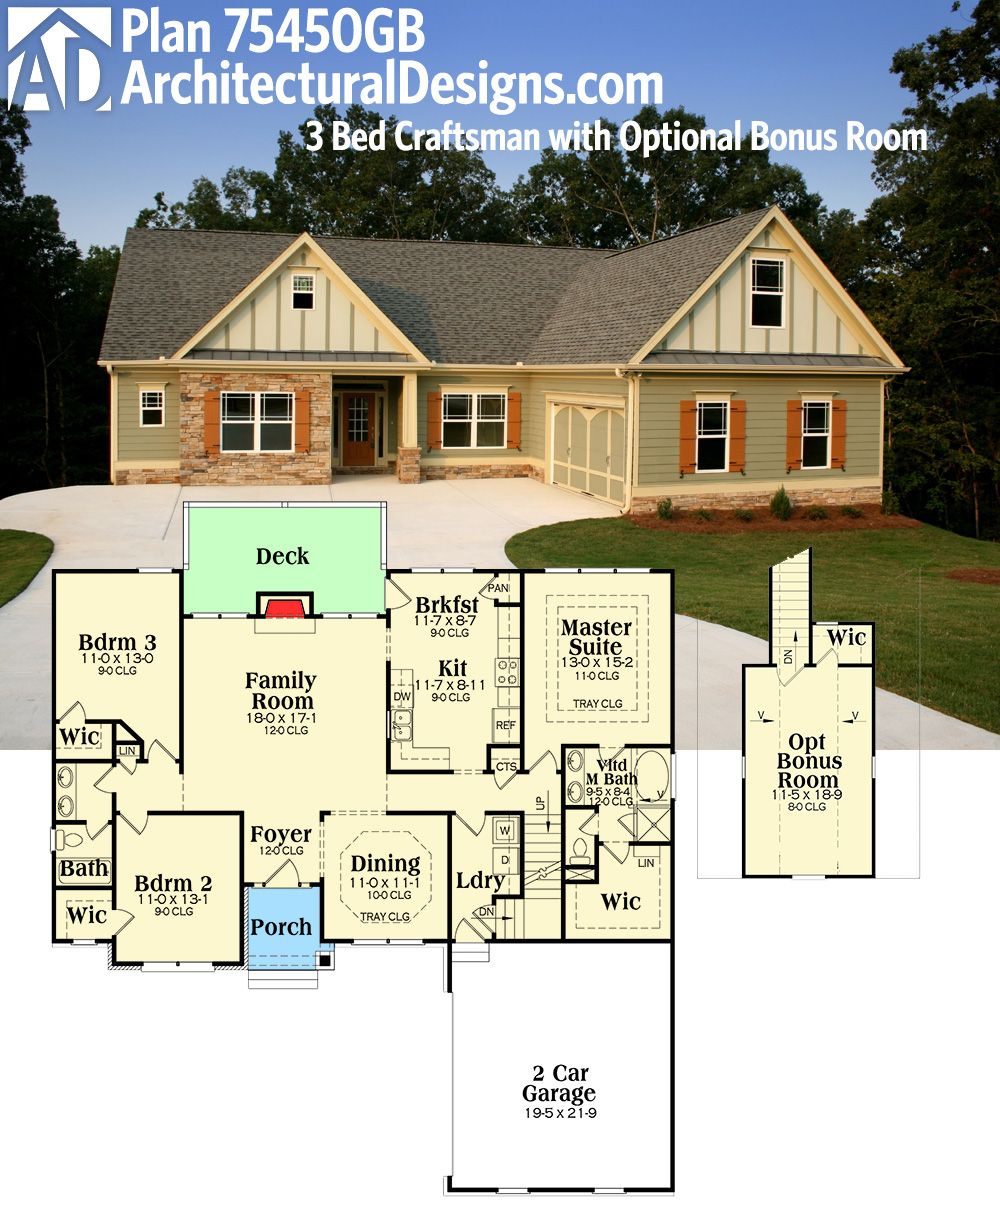 Plan 75450gb 3 bed craftsman with optional bonus room for Small house over garage plans